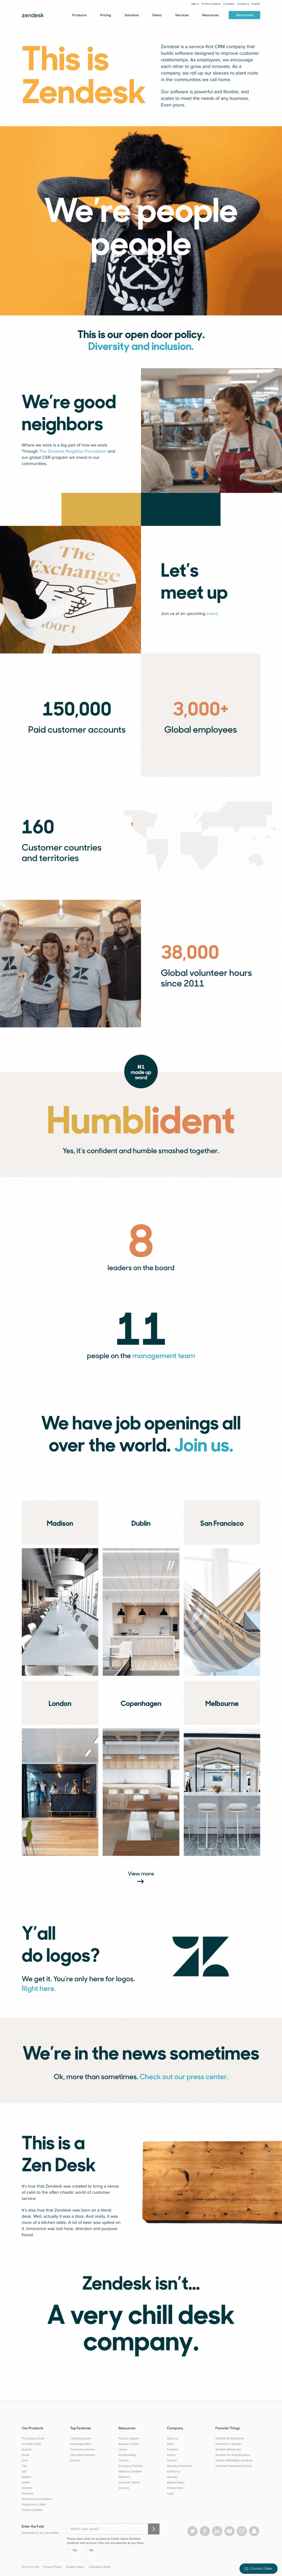 zendesk-about-us-page